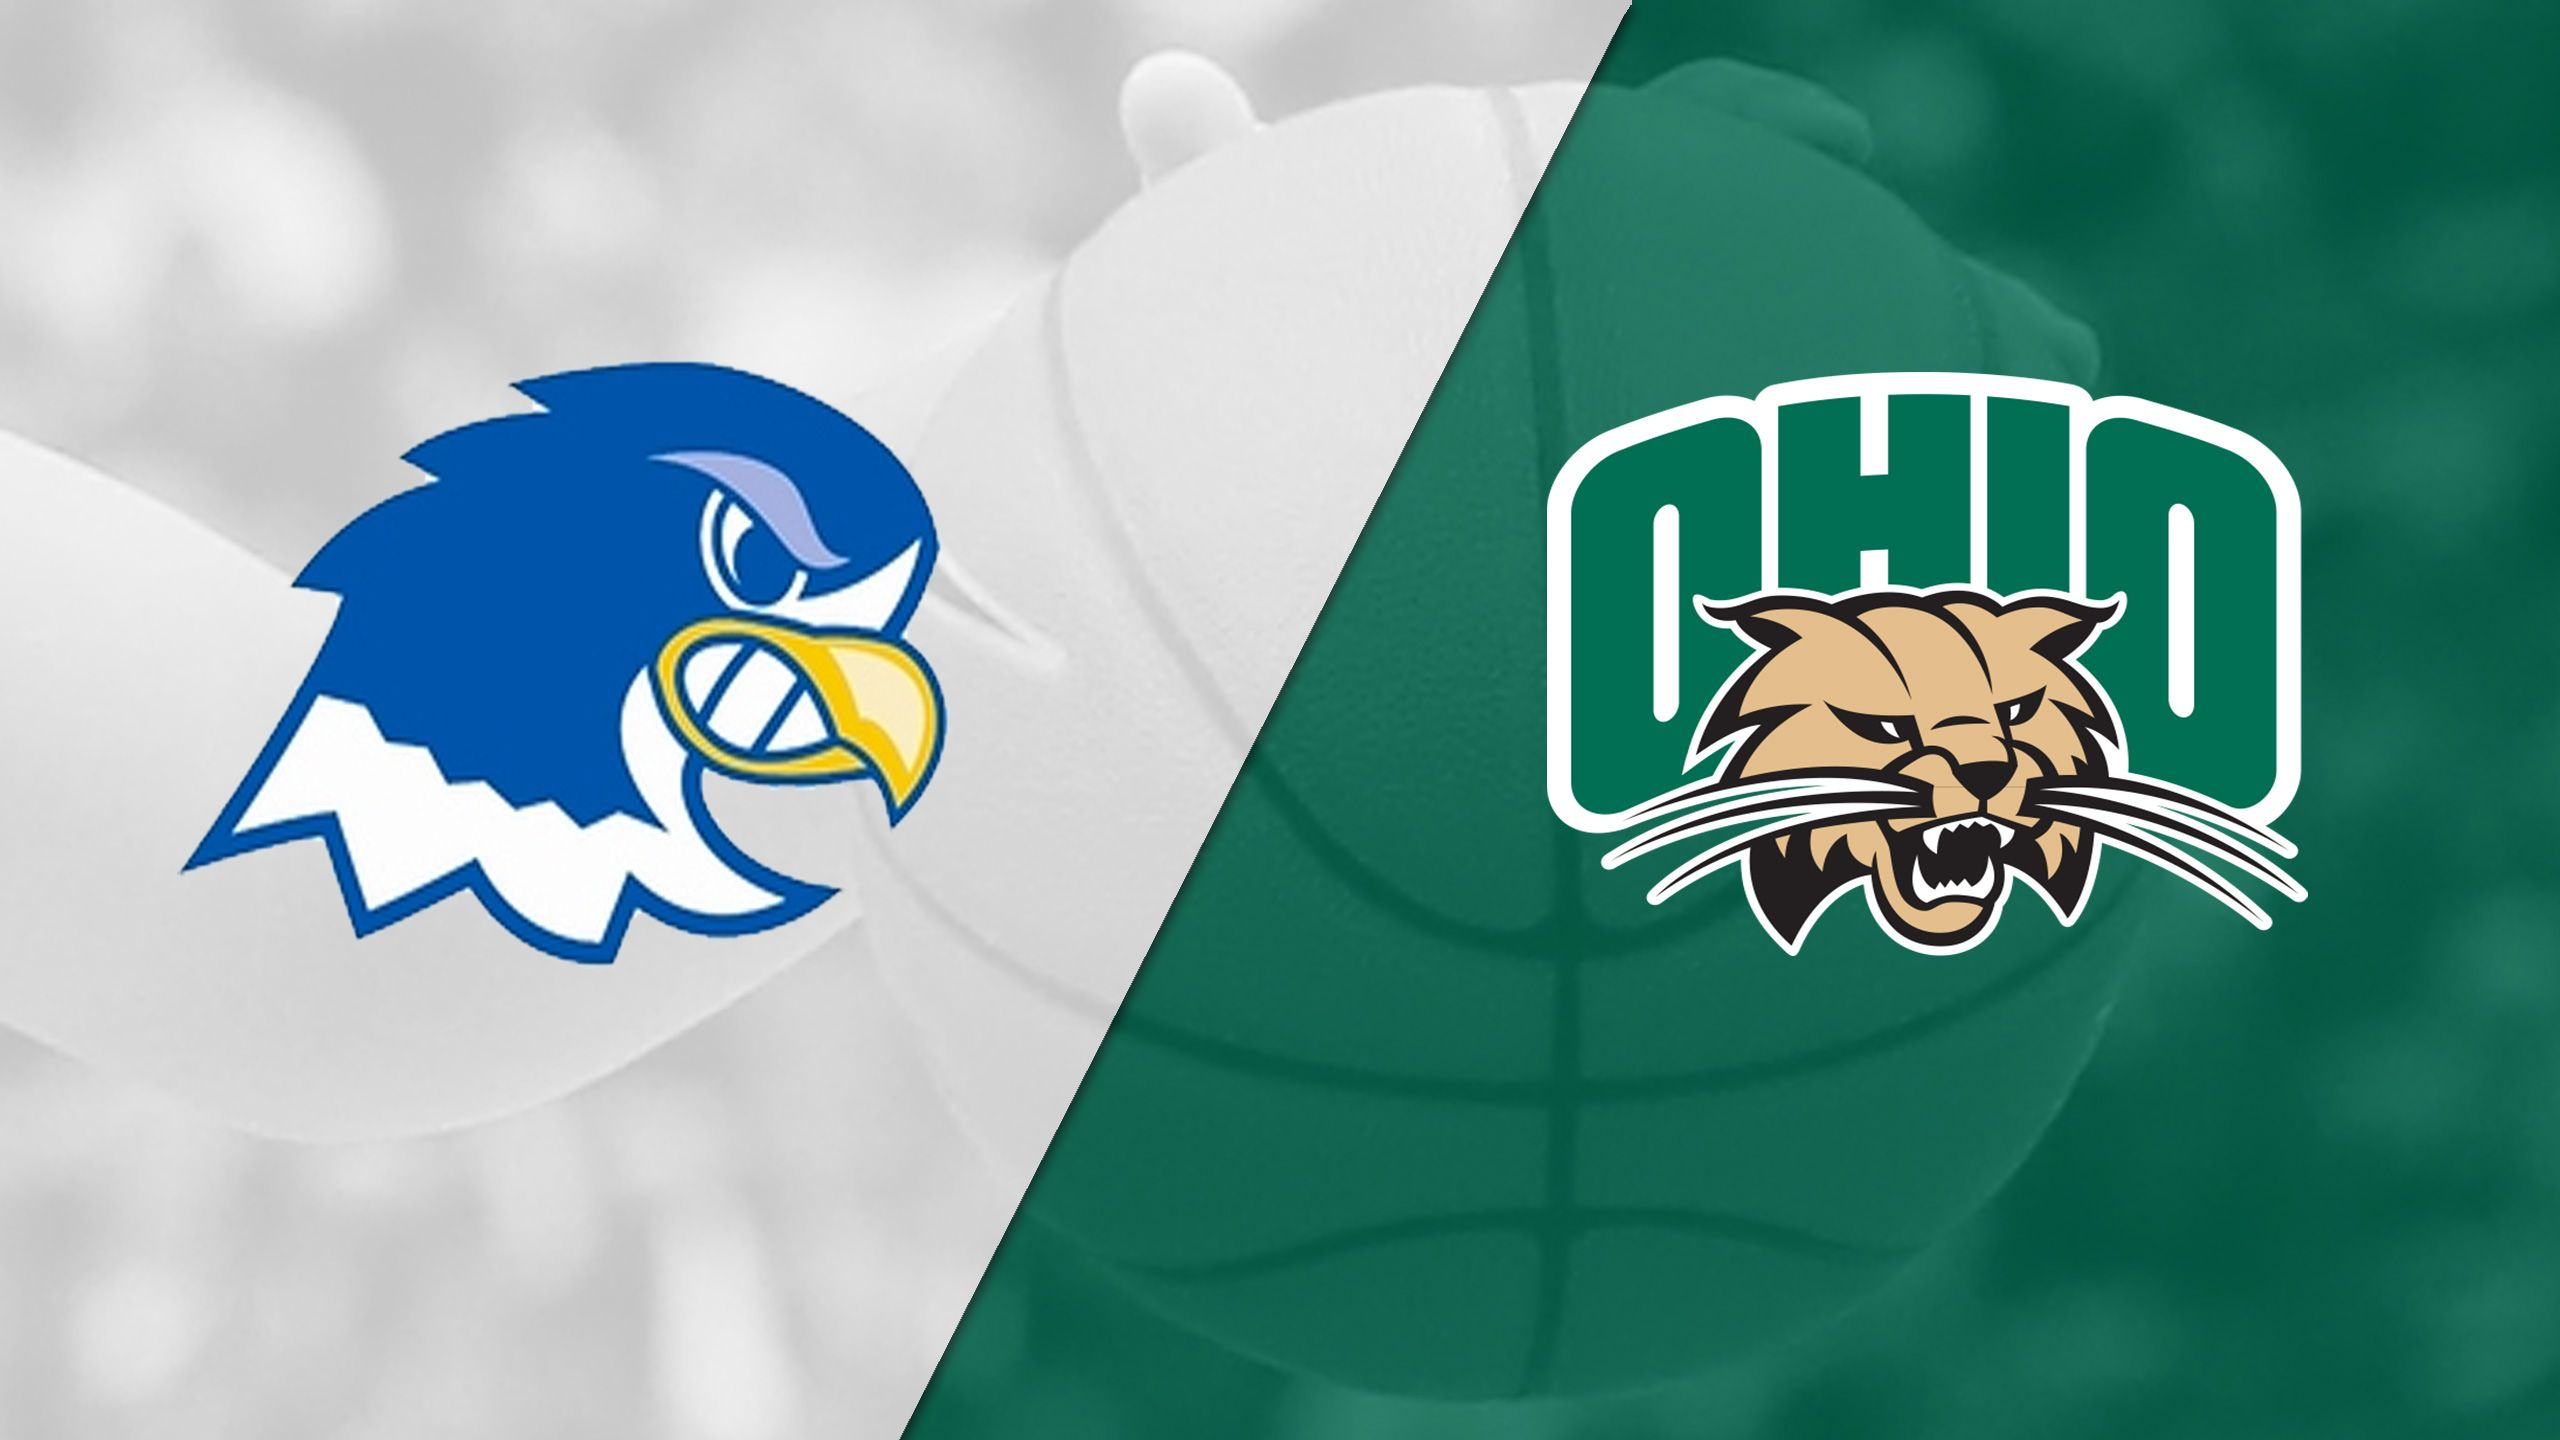 Notre Dame College vs. Ohio (W Basketball)